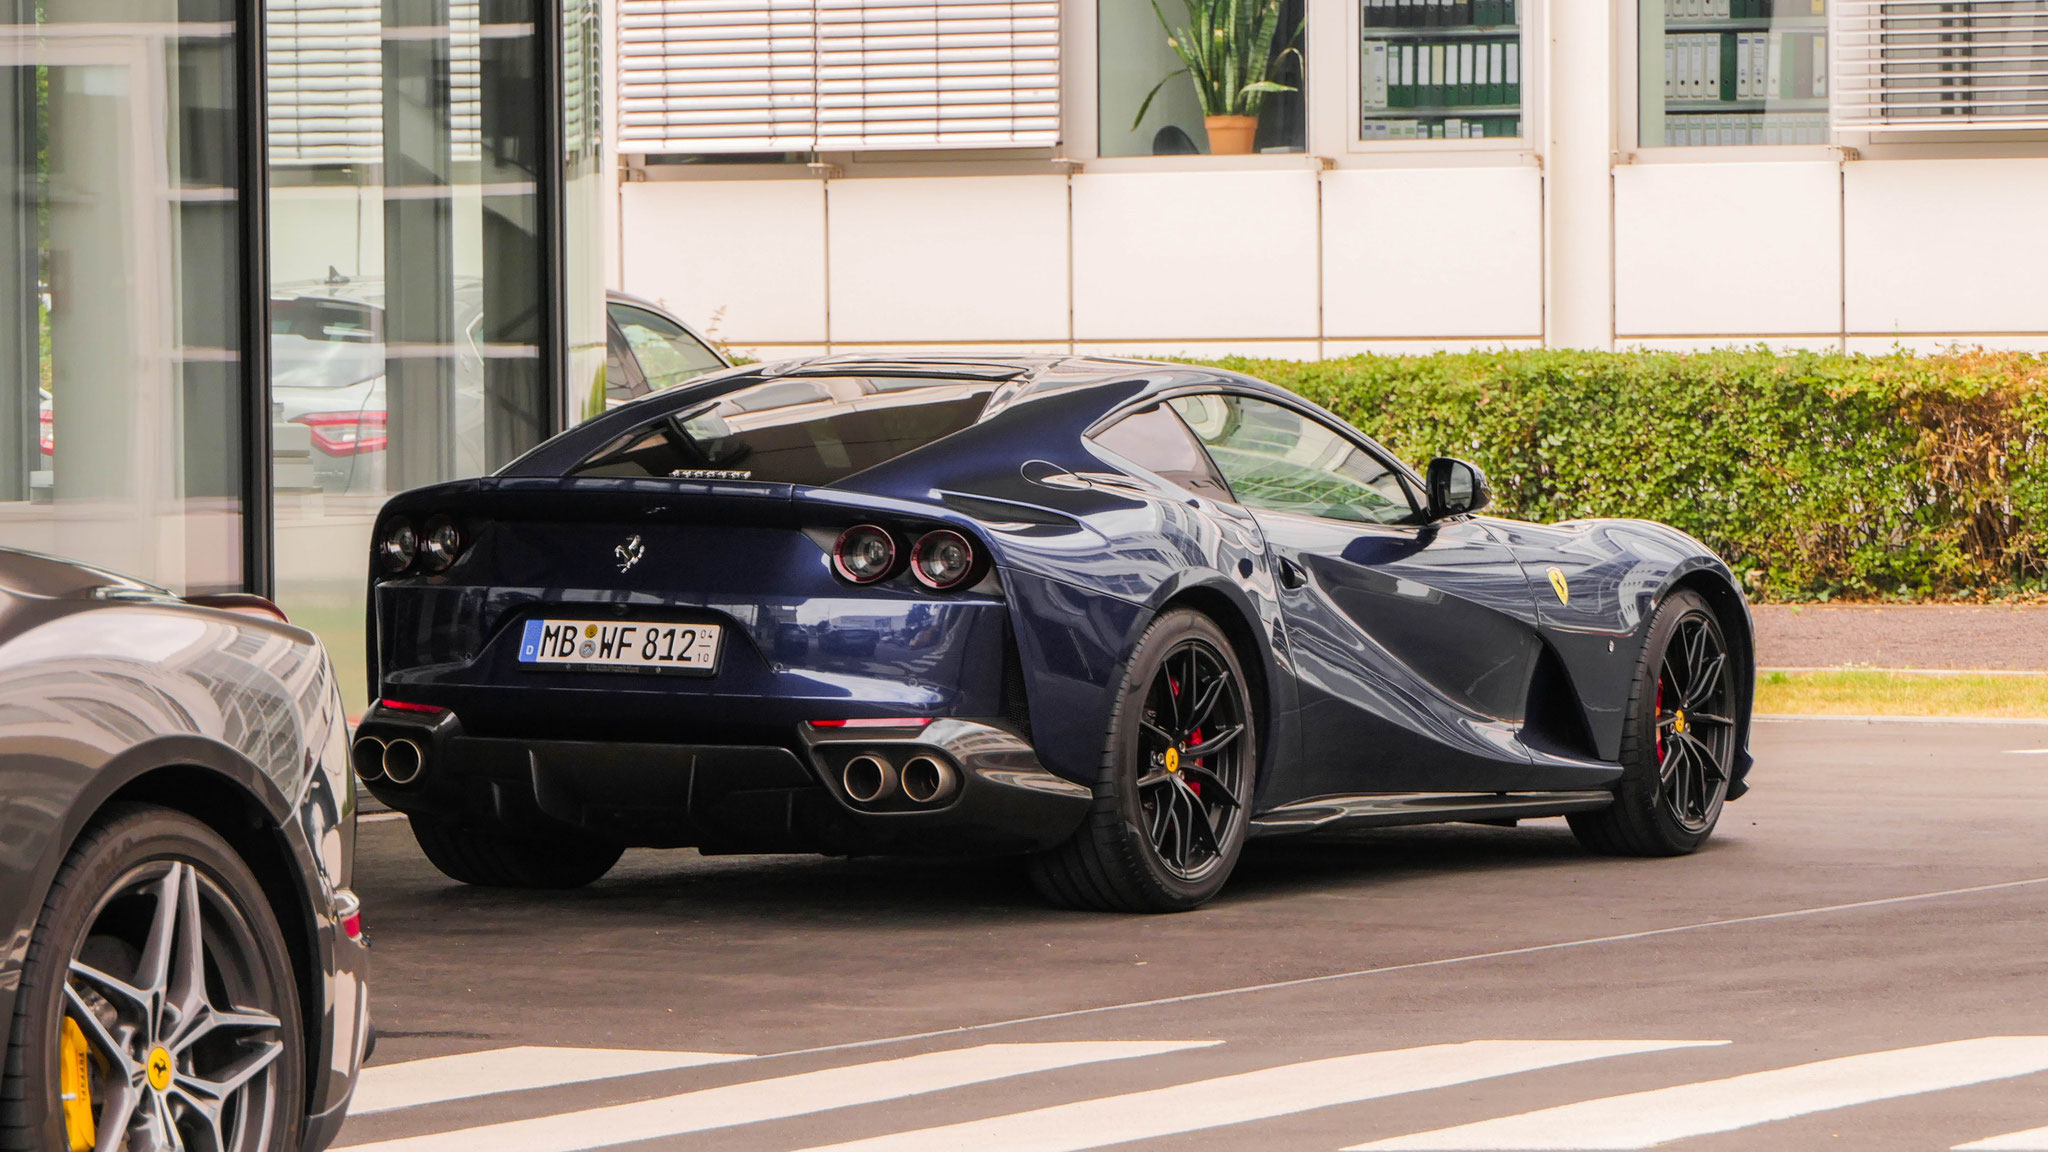 Ferrari 812 Superfast - MB-WF-812